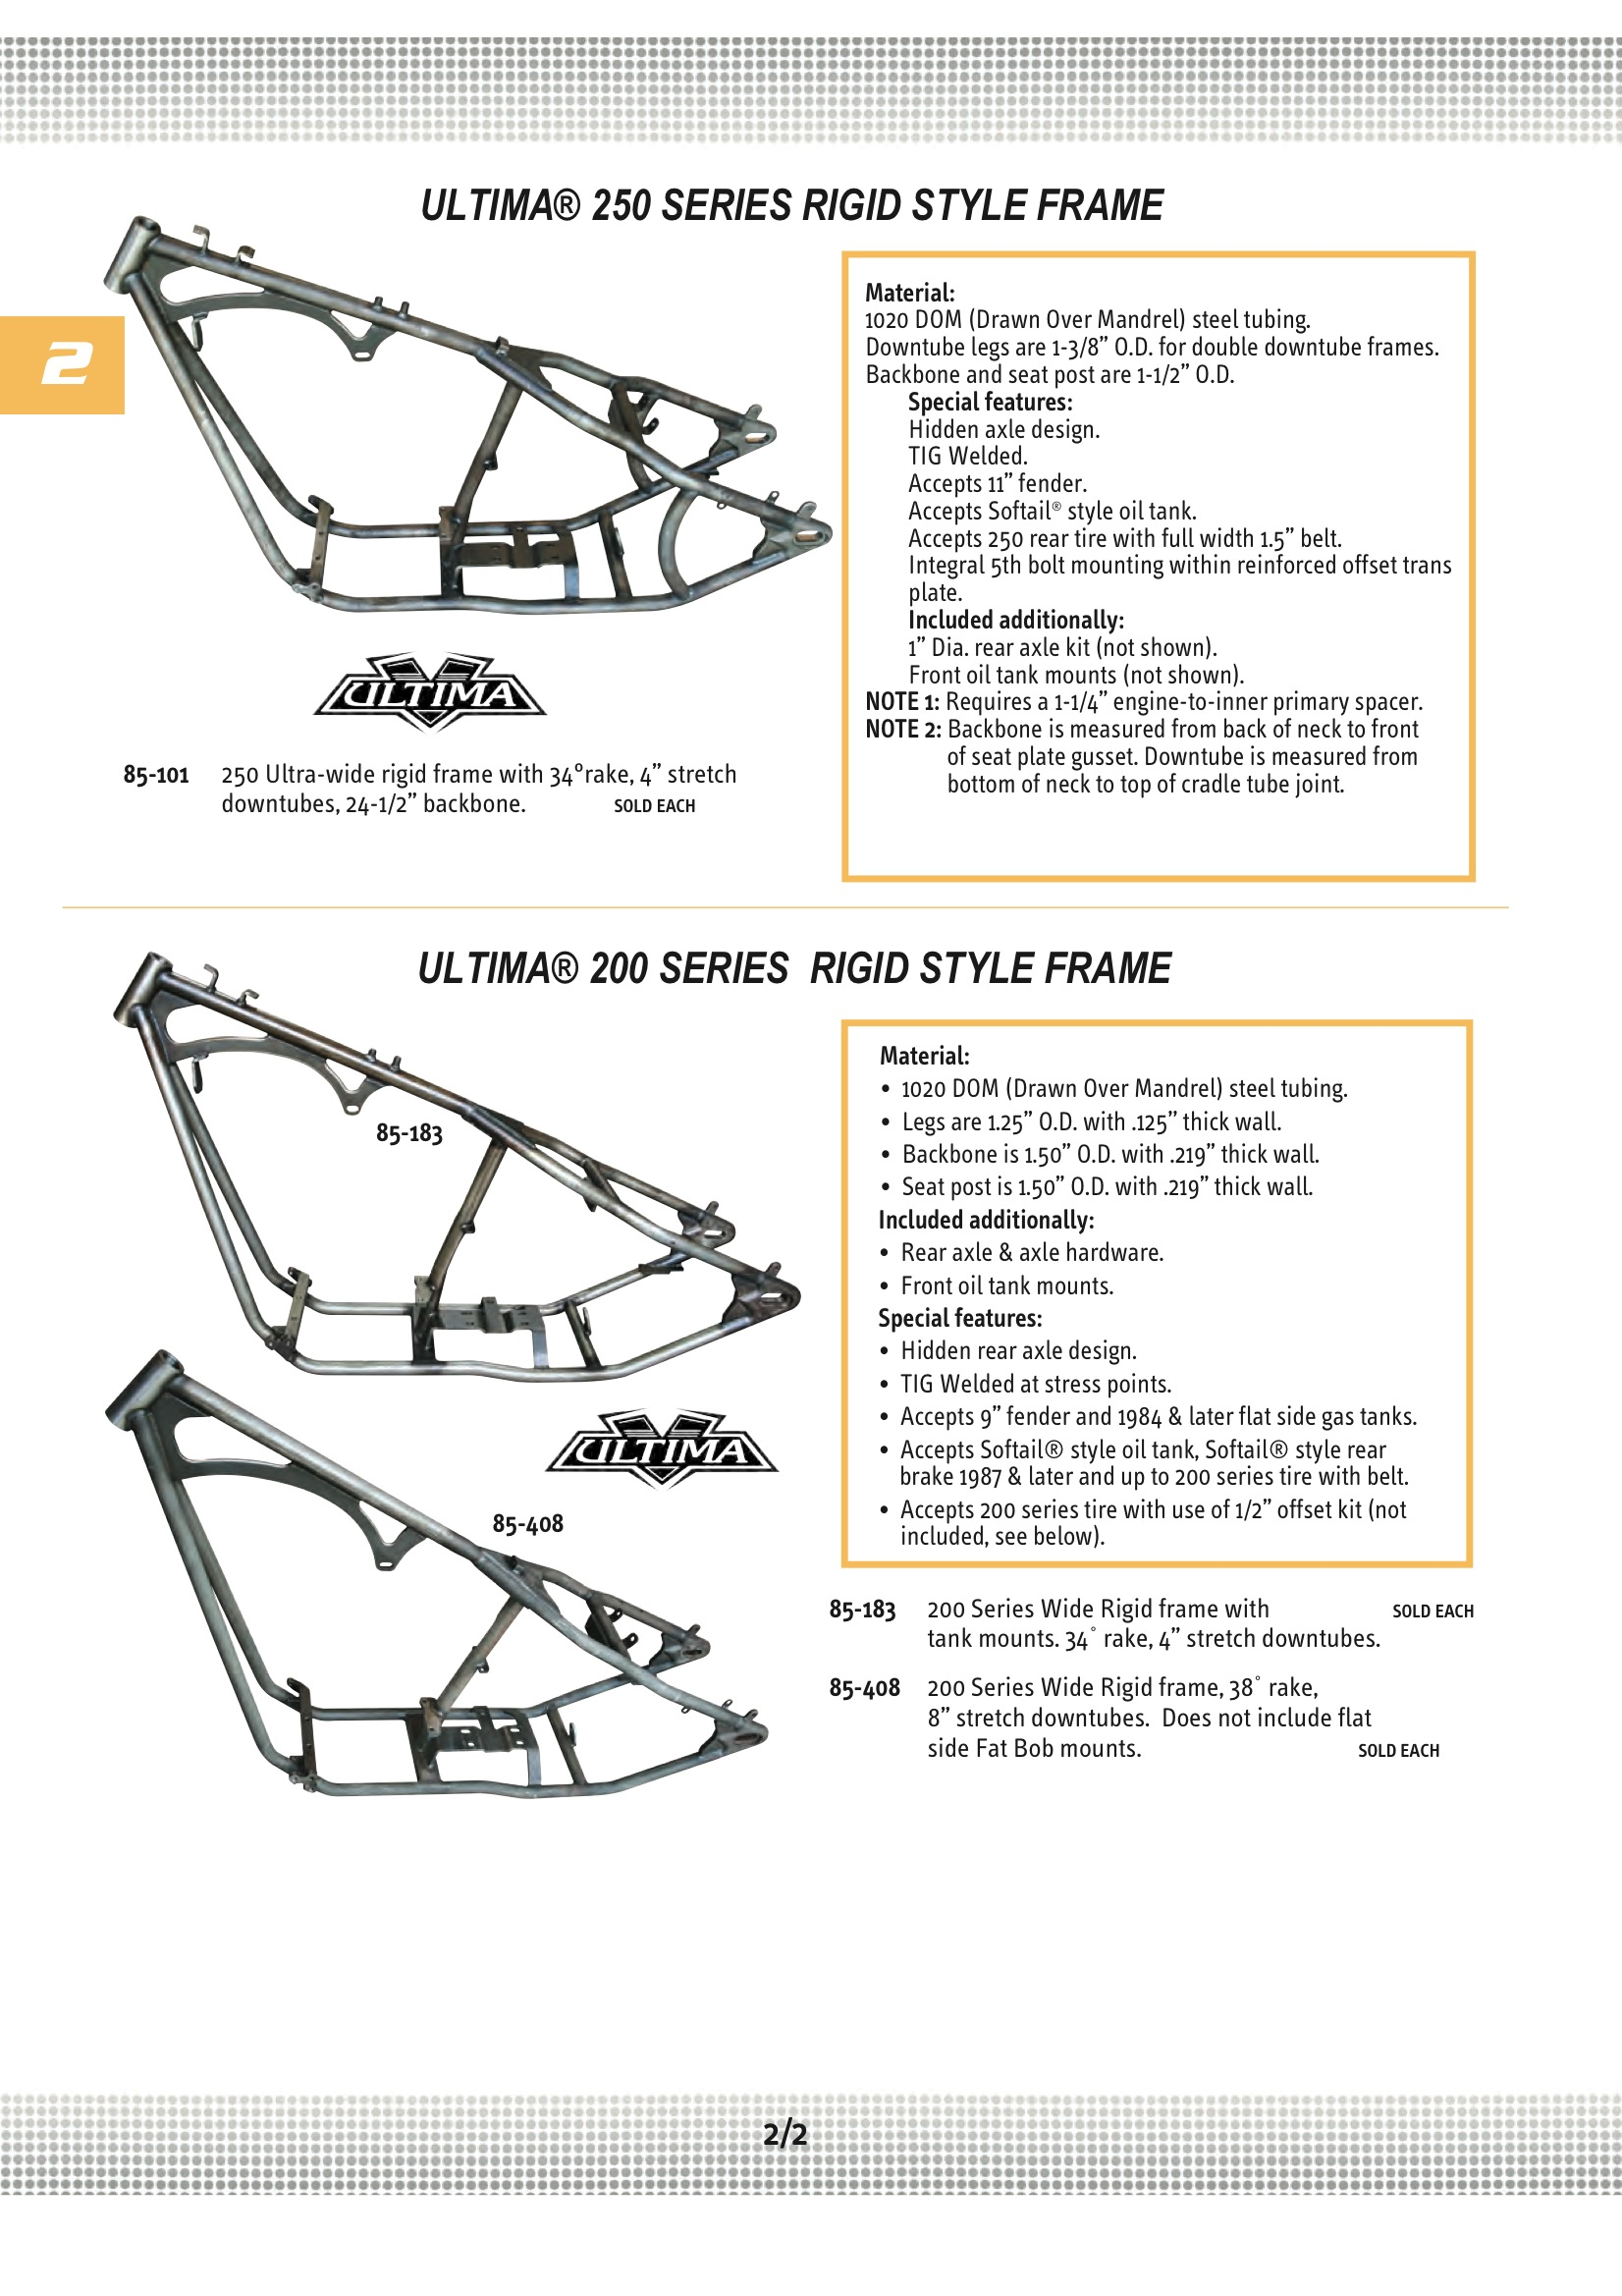 Harley Softail Frame Diagram - Wiring Diagram Completed on harley wiring color codes, harley relay diagram, harley throttle cable diagram, harley evo diagram, harley panhead wiring, harley fuel lines diagram, harley headlight diagram, harley softail wiring harness, harley fuel pump diagram, harley switch diagram, harley dash wiring, harley fuse diagram, harley magneto diagram, harley stator diagram, harley frame diagram, harley shift linkage diagram, harley wiring tools, harley generator diagram, harley rear axle diagram,